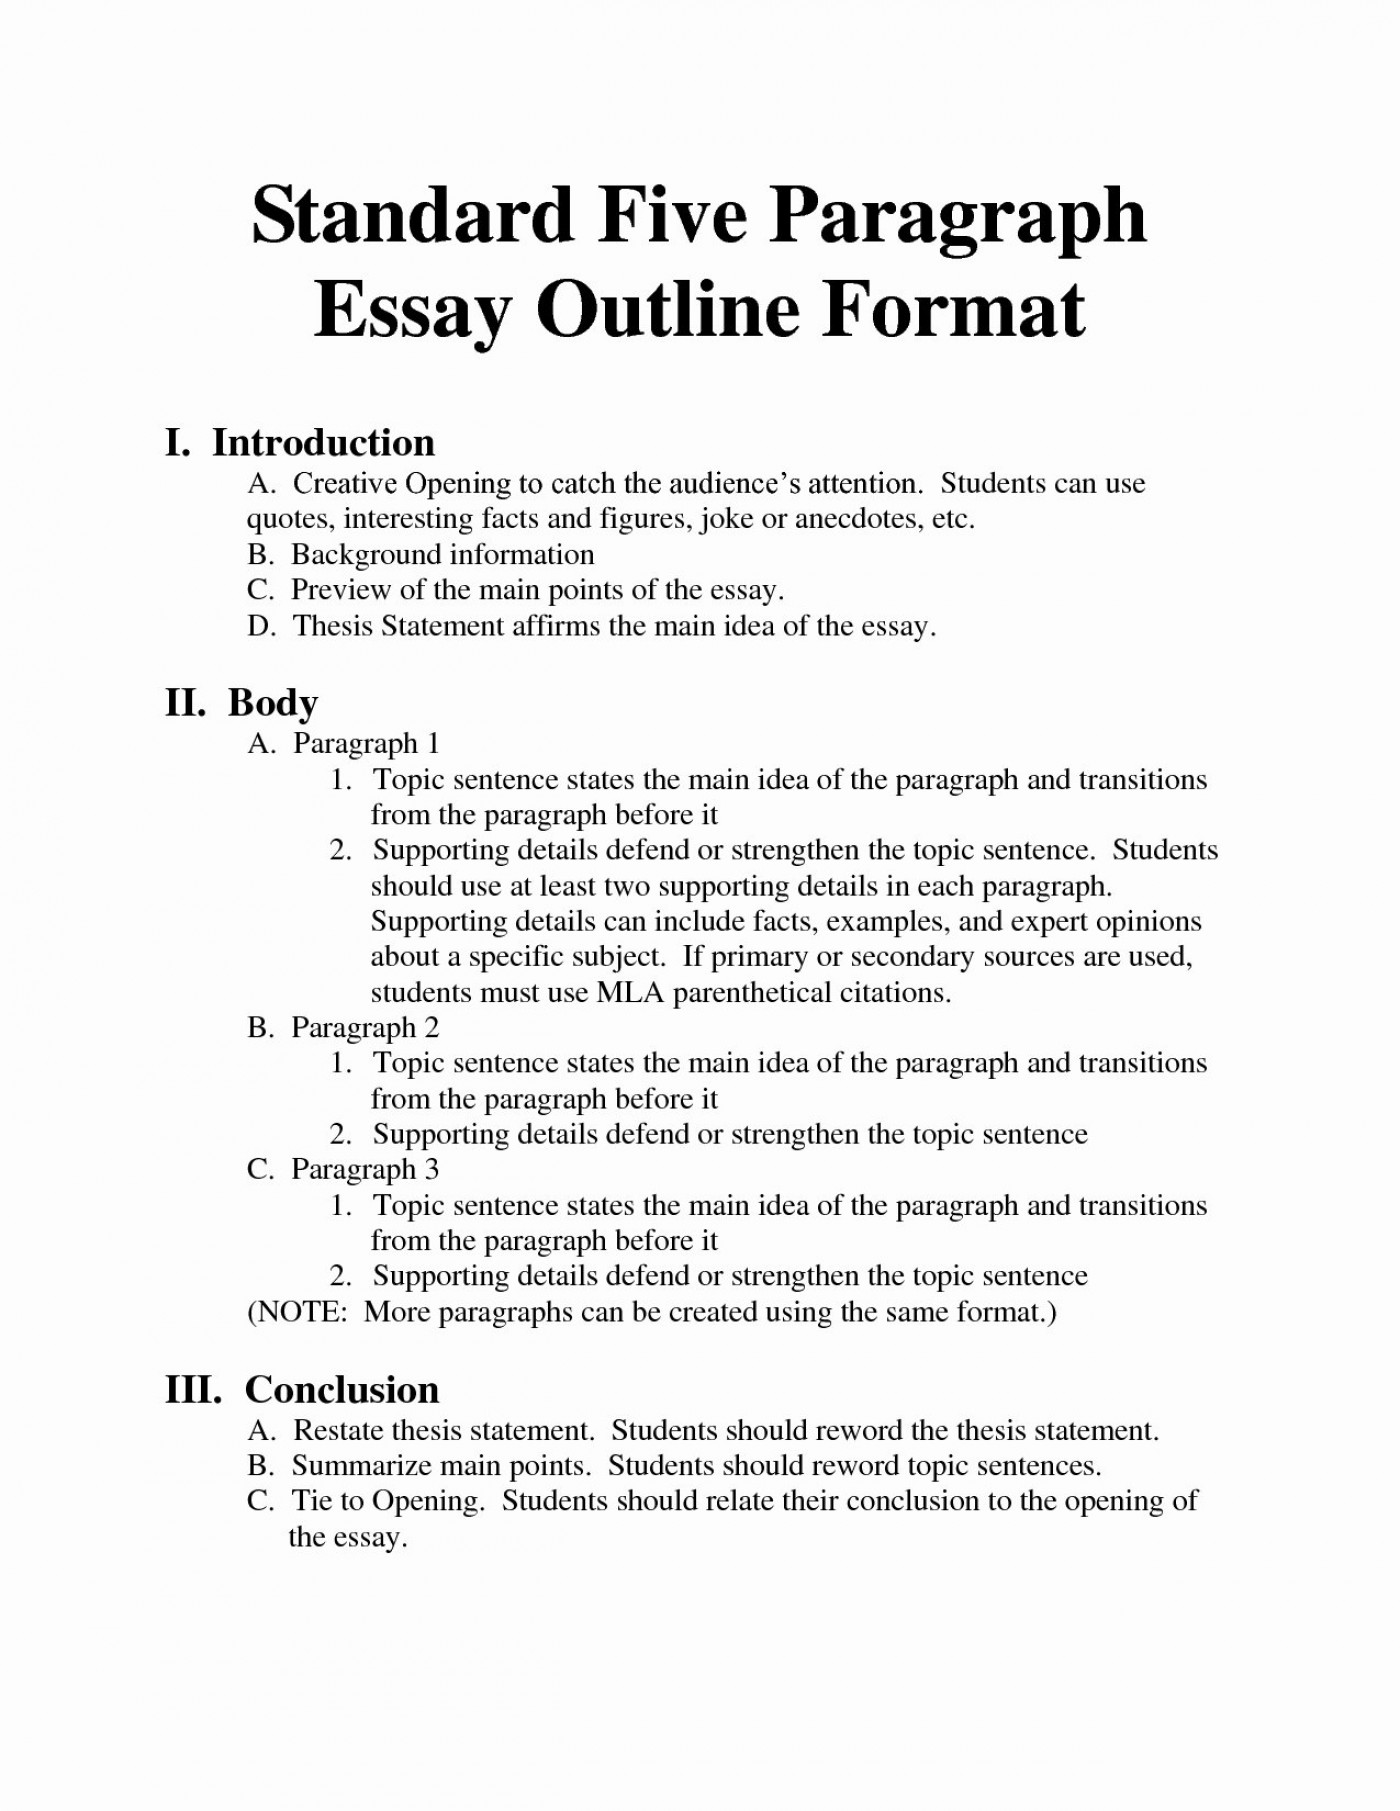 016 Unique Evaluation Essay Outline English Format Movie Of Self Film Template Layout Critical Example Incredible Book Samples On Movies 1400